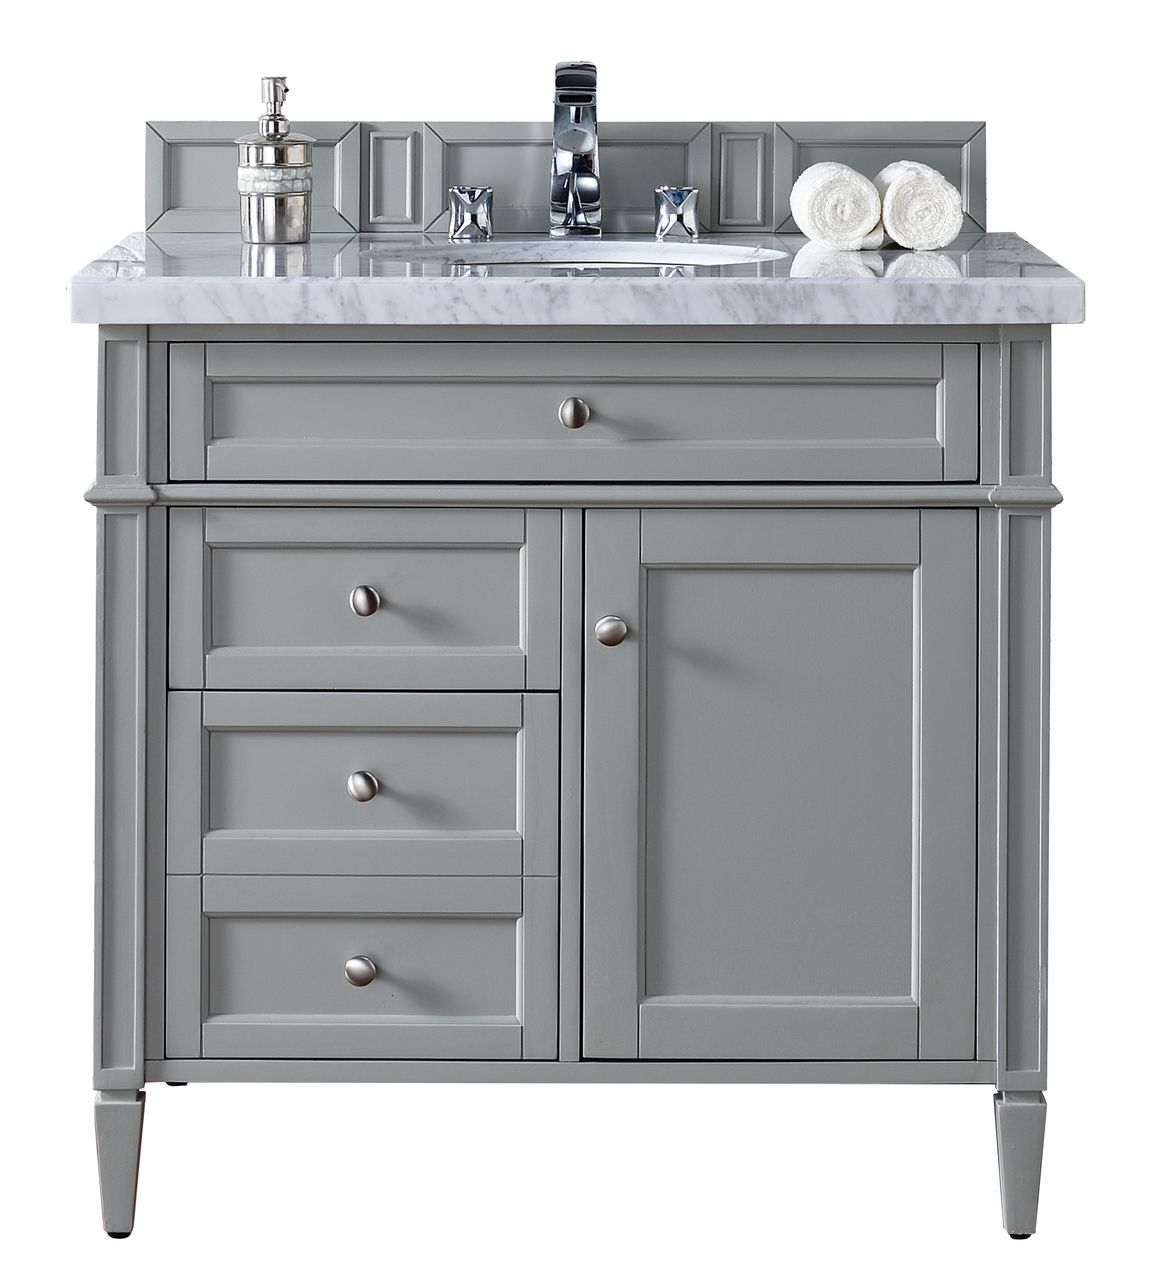 36 Brittany Single Bathroom Vanity Urban Gray  Grey